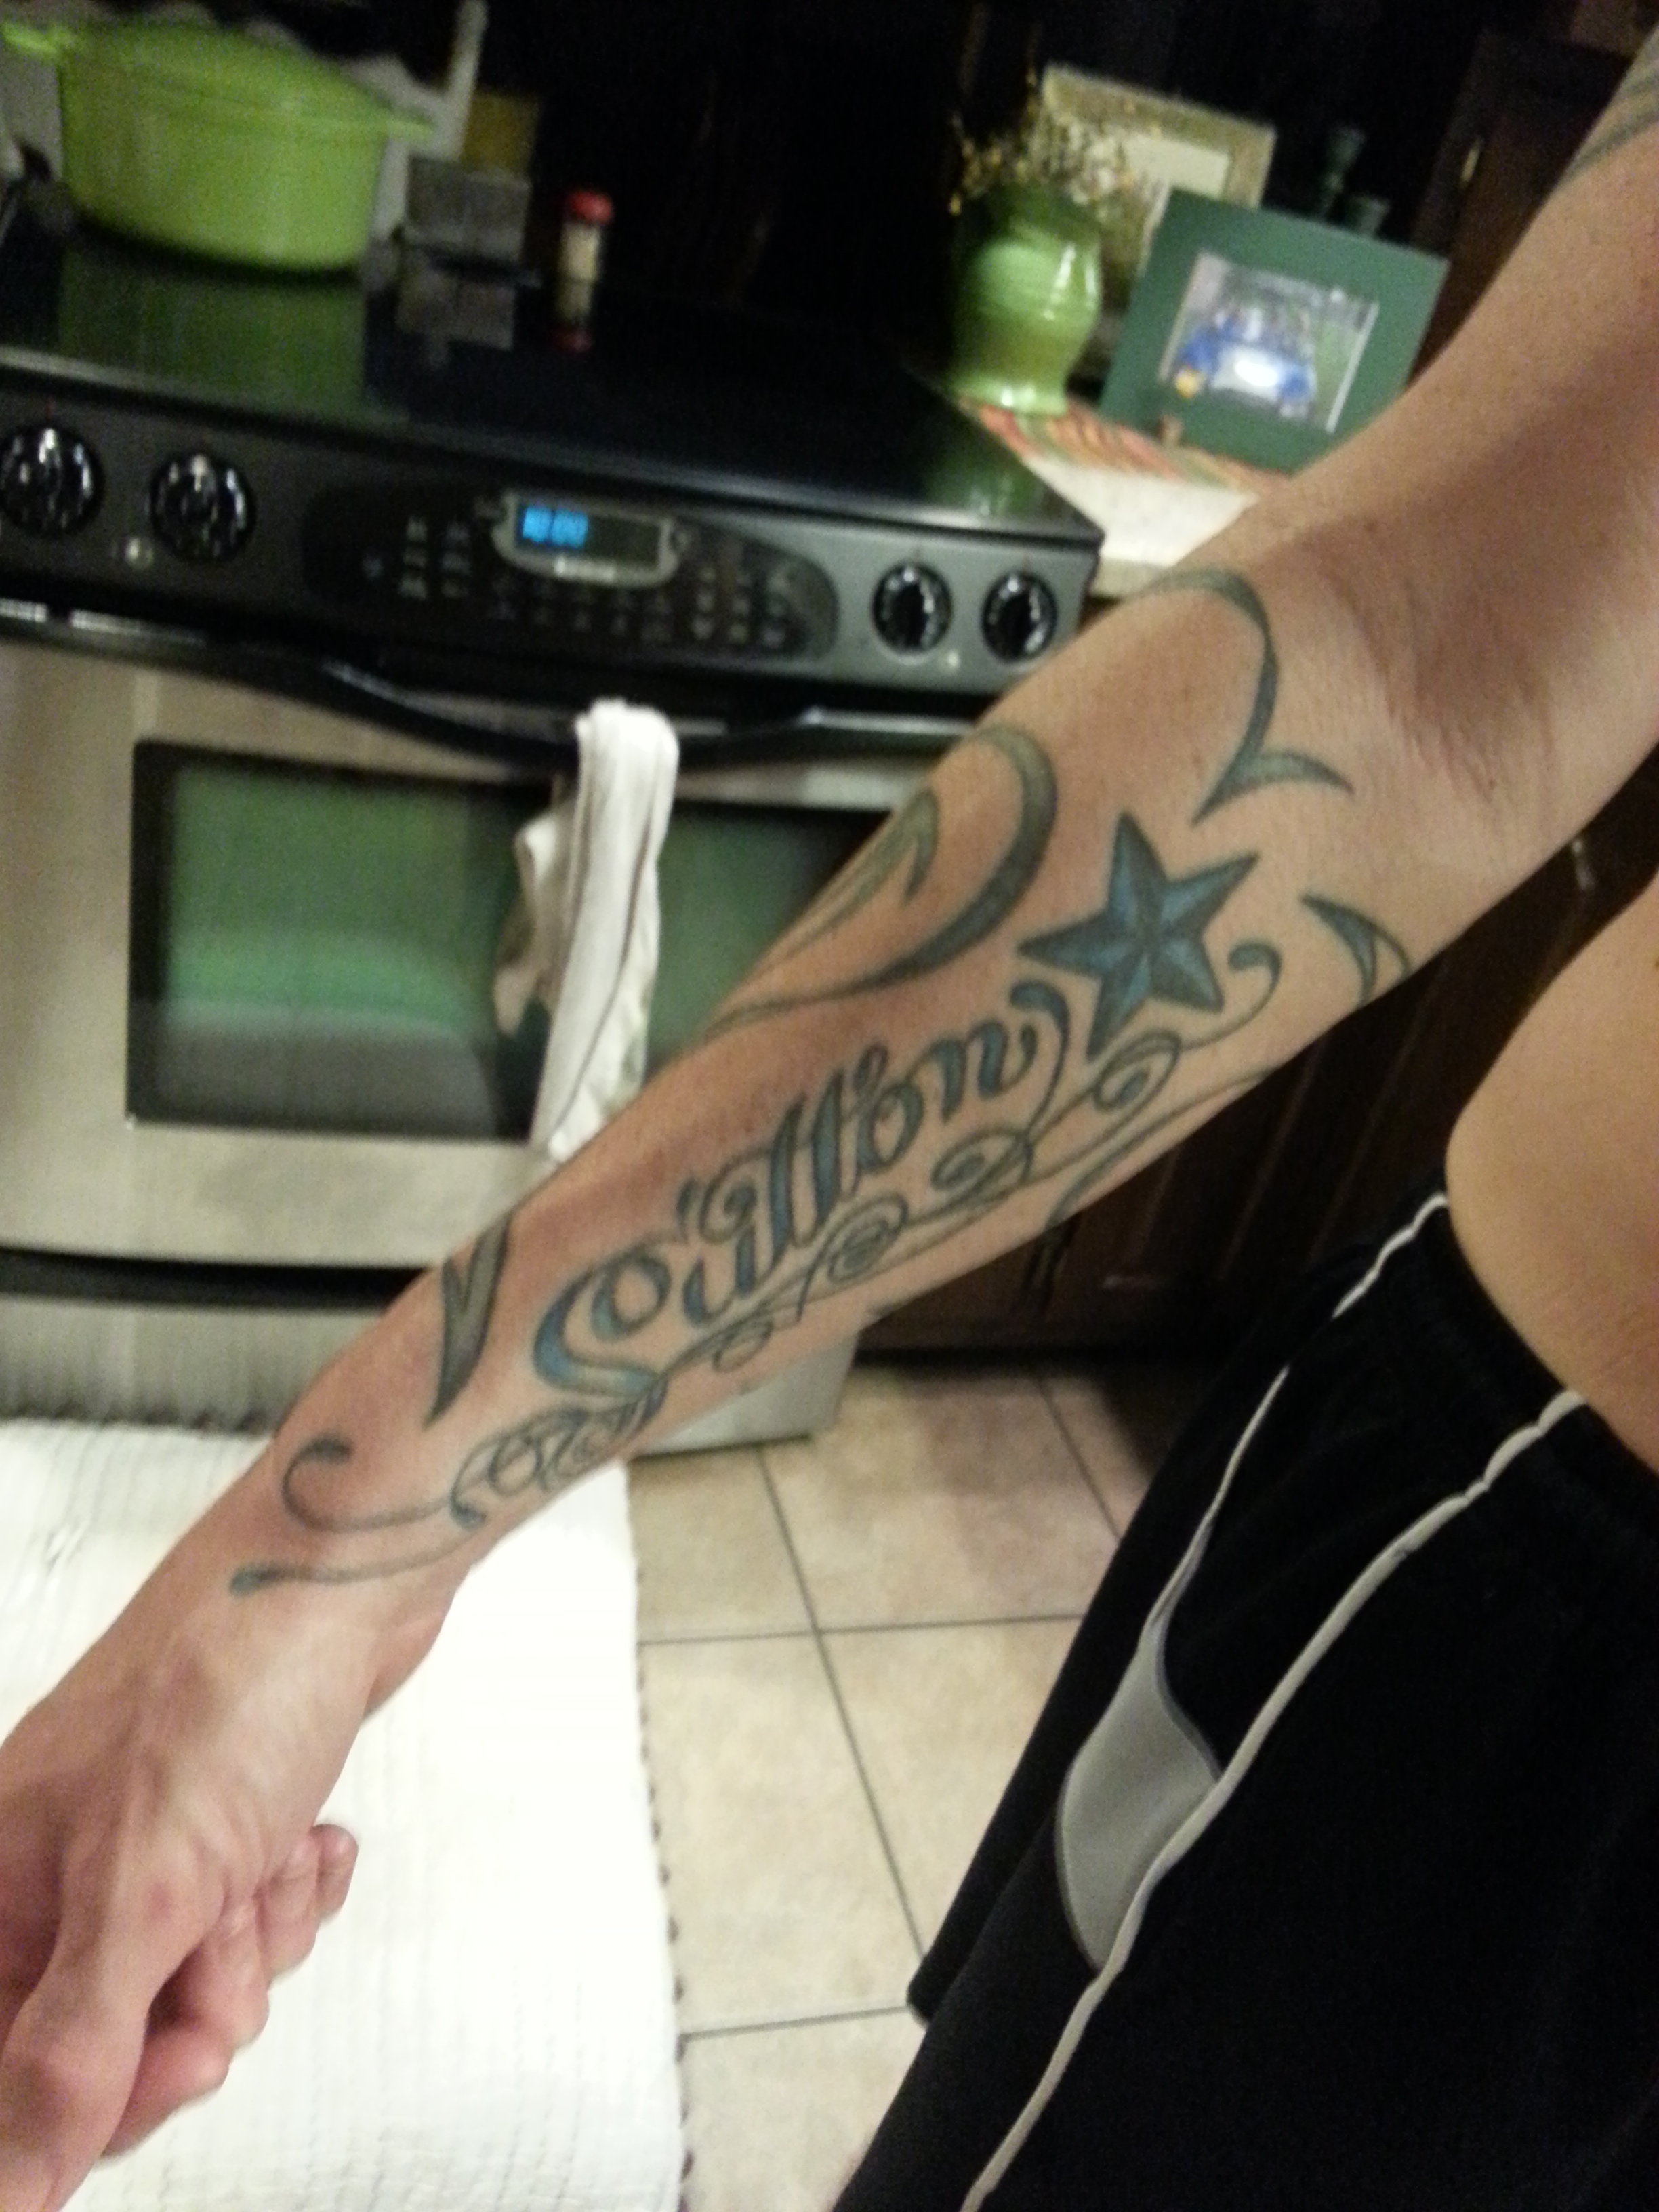 Tattoos Self Adornment Status Or Attempts At Healing Tattoo Machine Diagram Also As Well 20140608 220043 20140606 070140 Copy Then Todd Added A